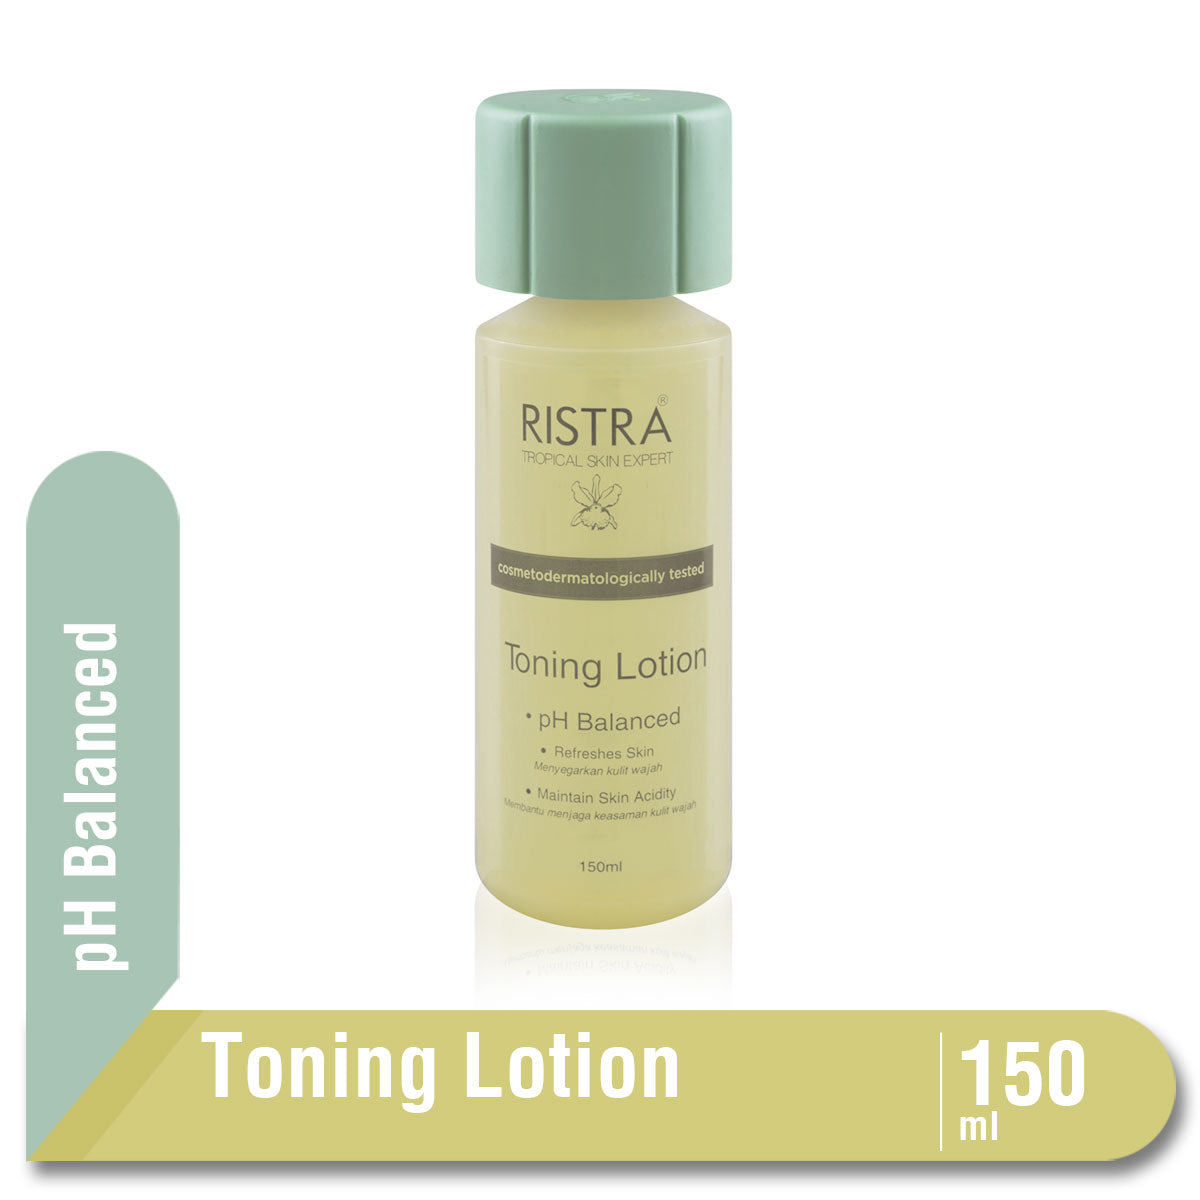 Ristra Toning Lotion Botol 150ml